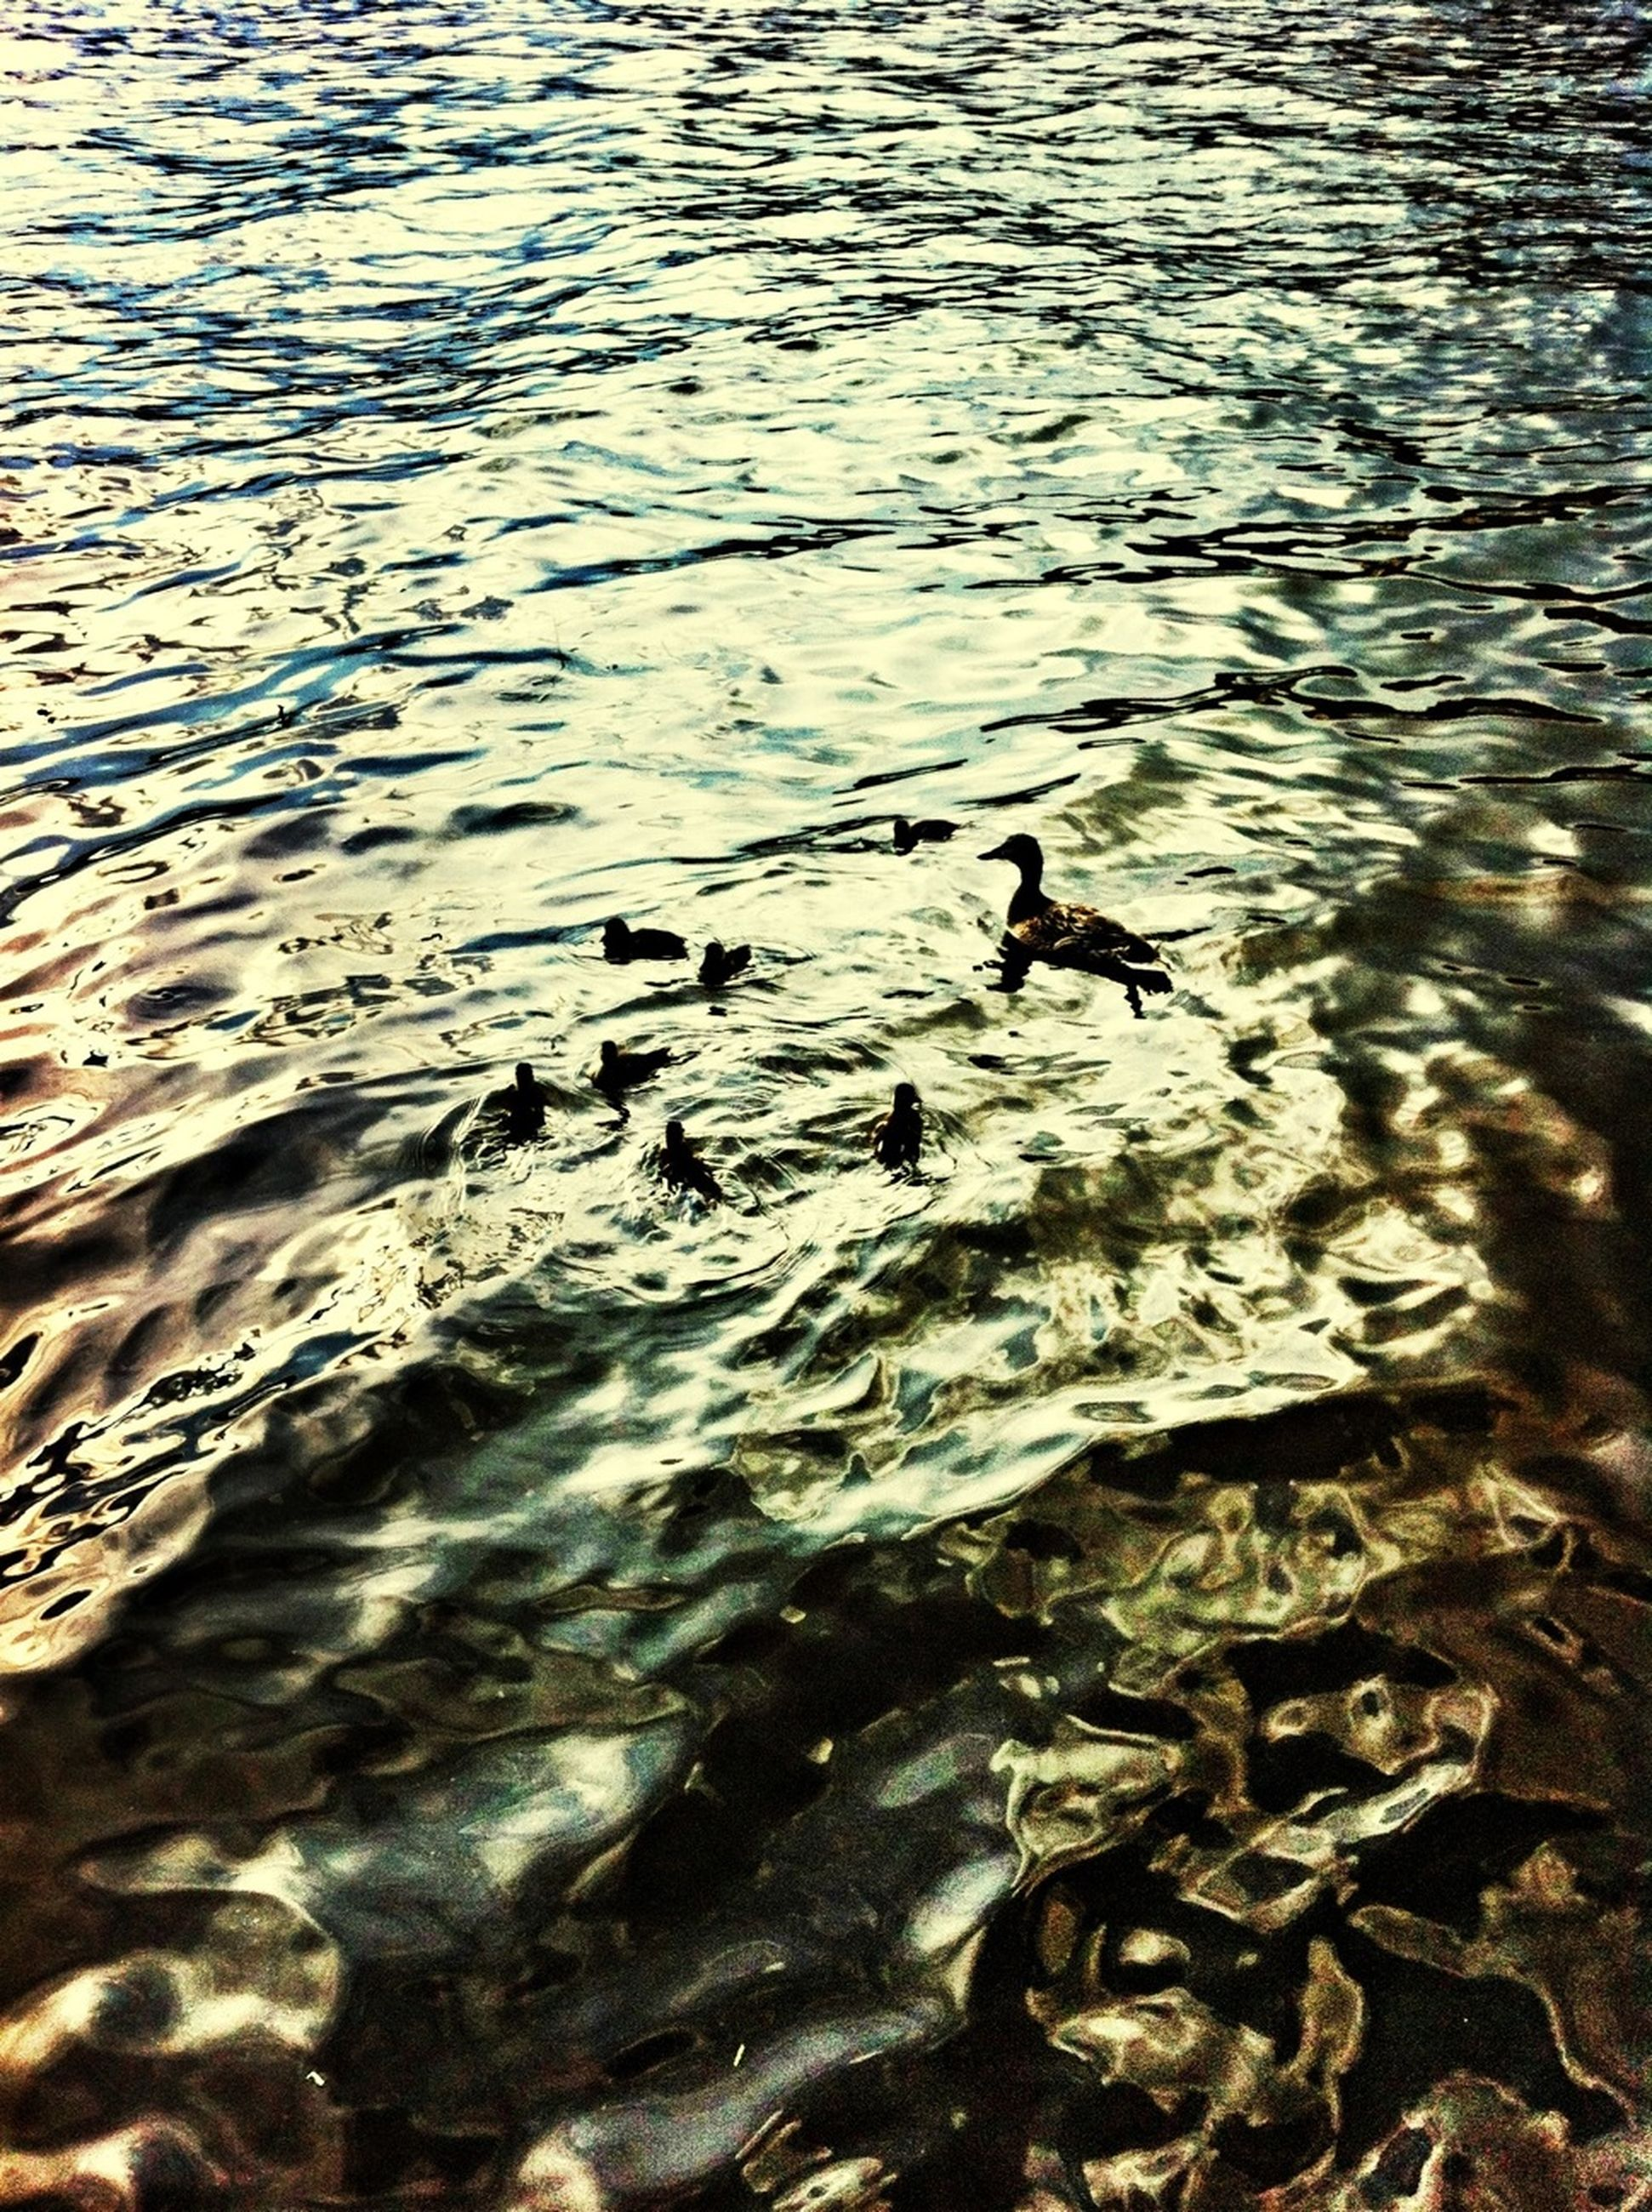 bird, animal themes, animals in the wild, wildlife, water, duck, high angle view, rippled, lake, swimming, waterfront, nature, seagull, outdoors, water bird, reflection, river, day, no people